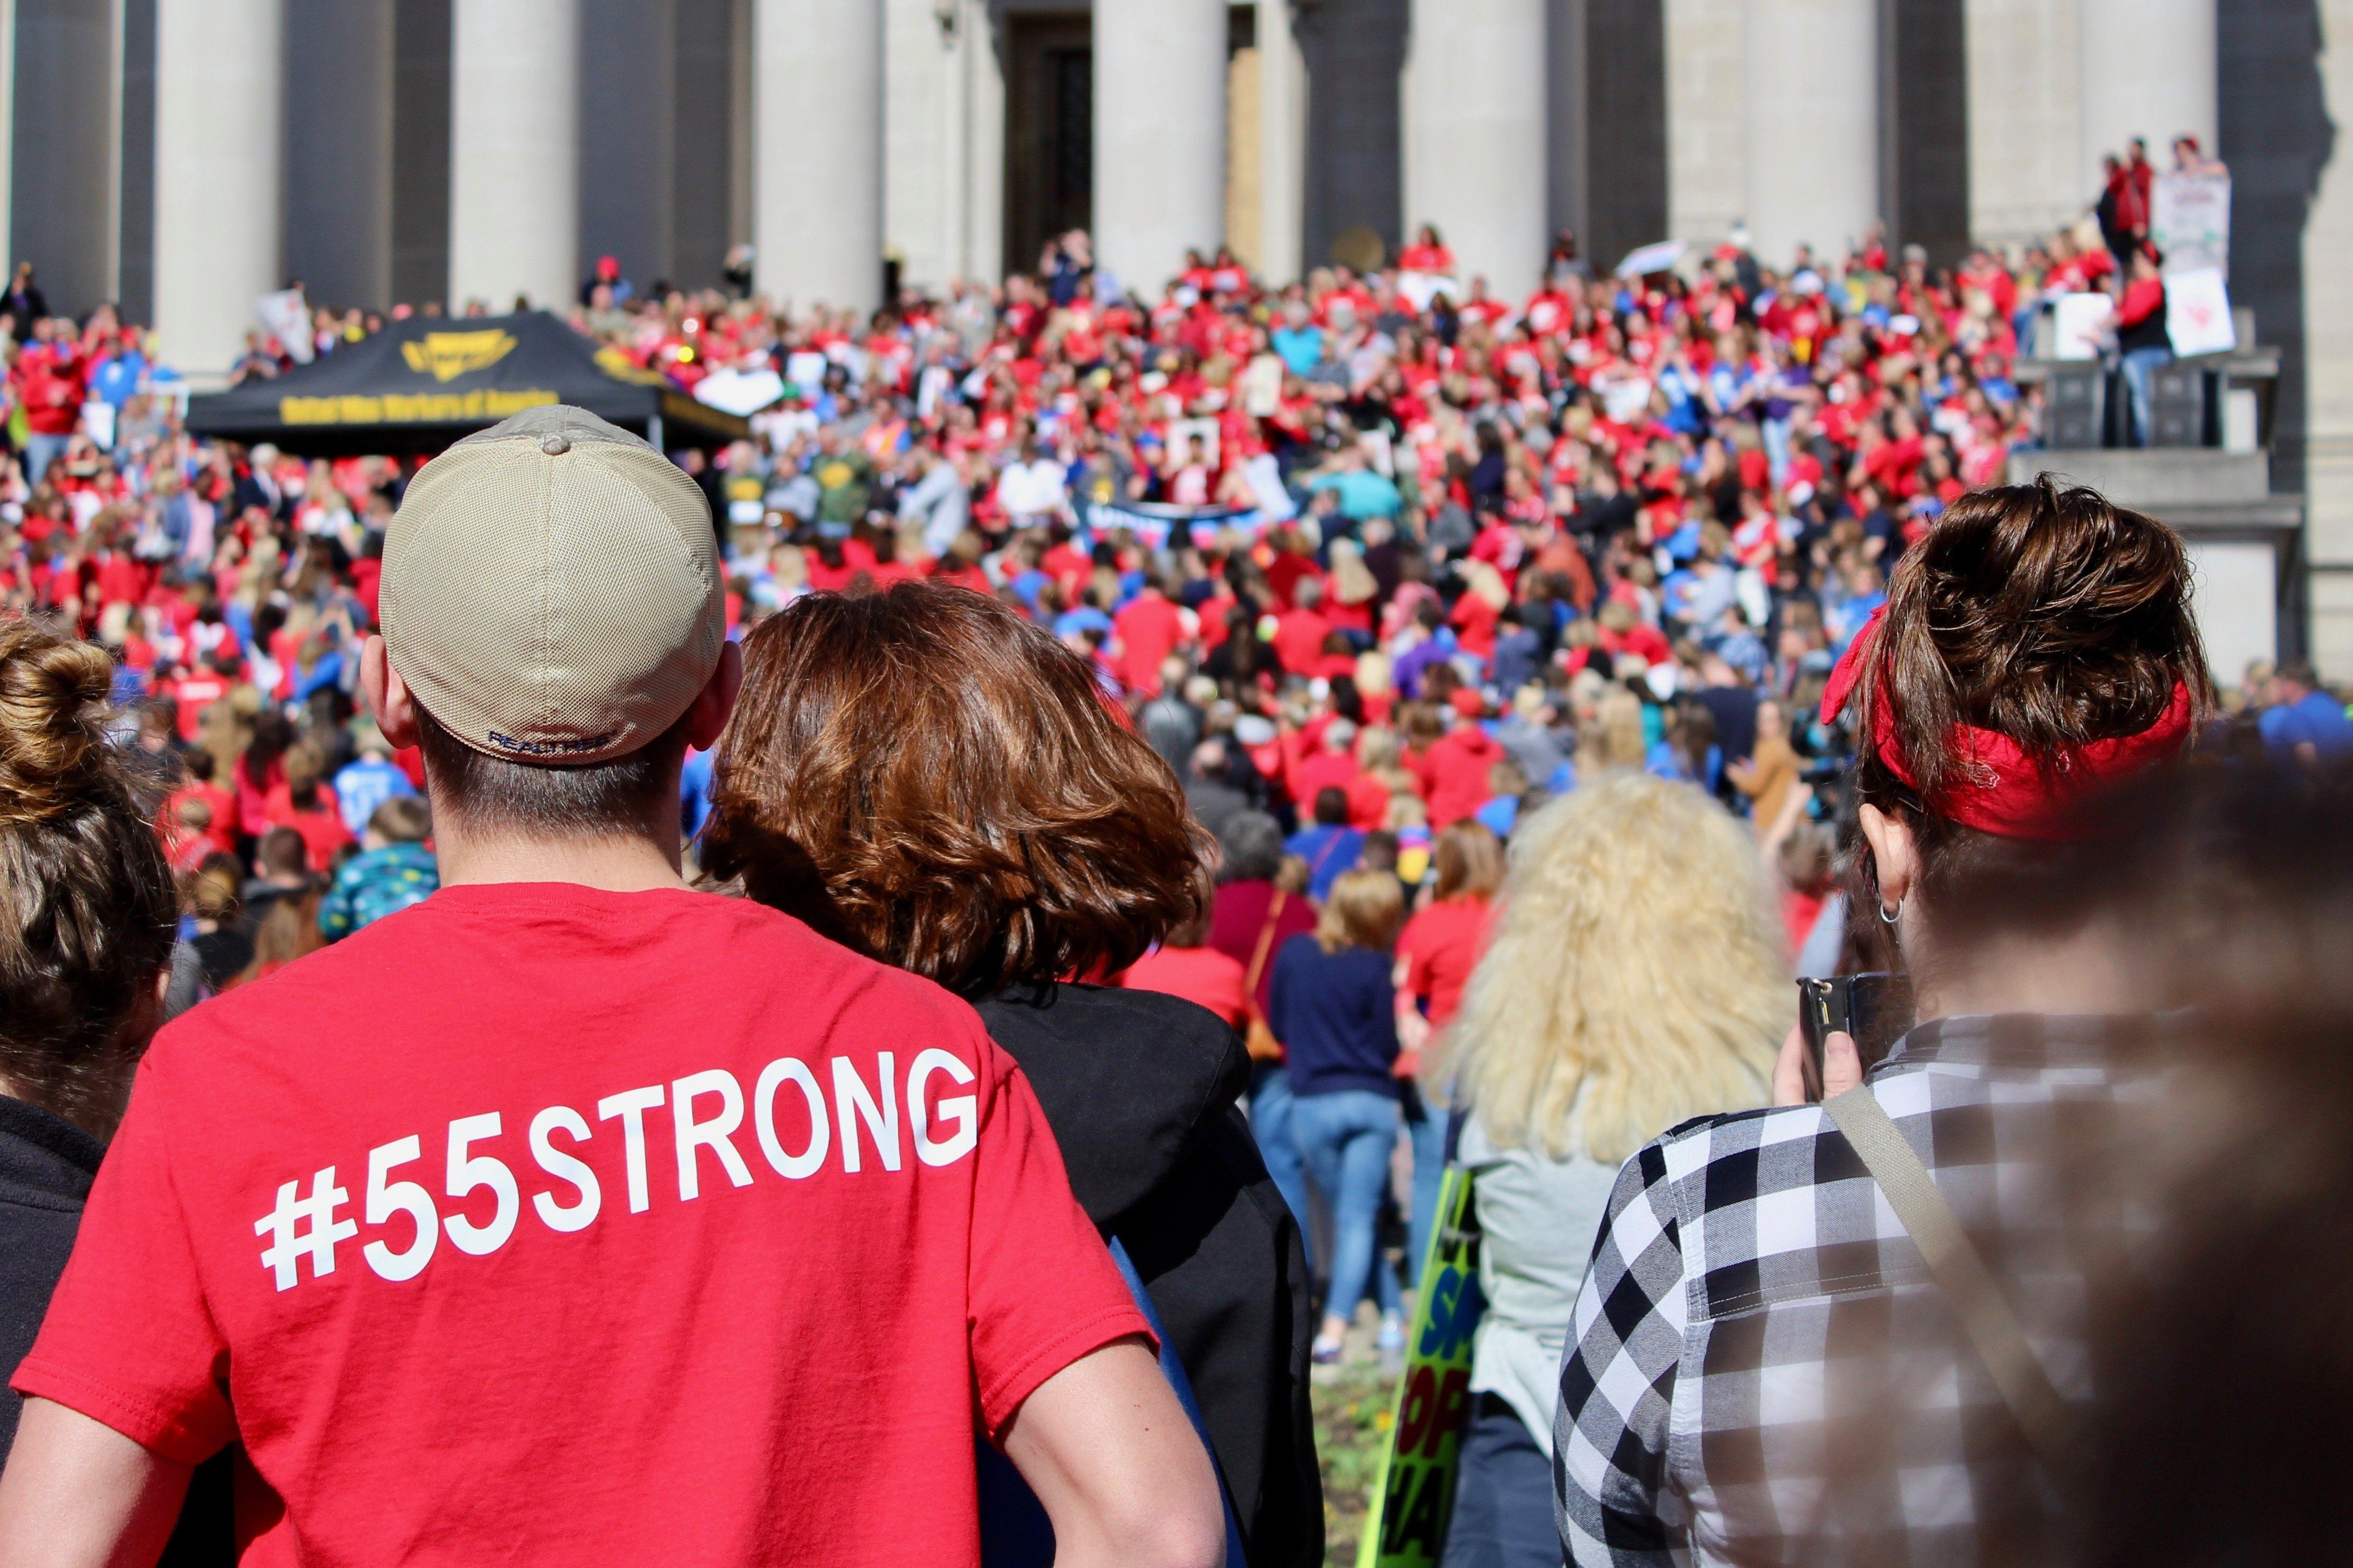 Teachers and other public employees gathered at the West Virginia capitol Monday on the third day of a statewide strike